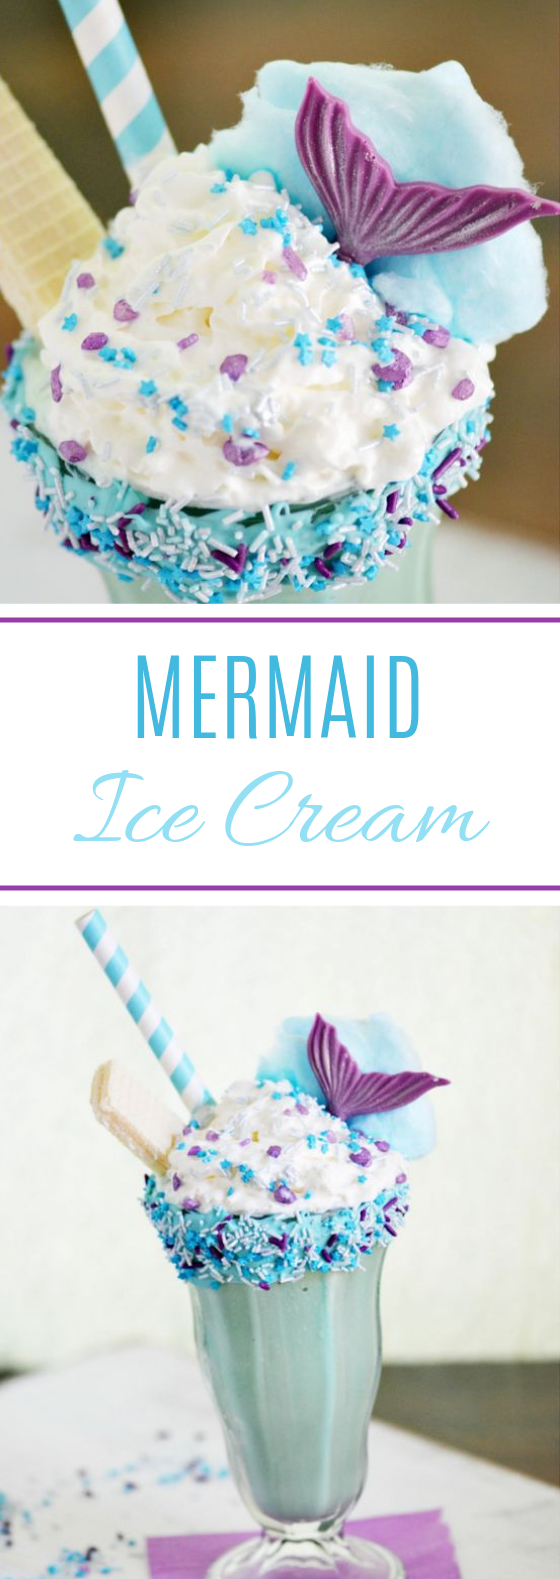 Mermaid Ice Cream Dream Shake #desserts #party